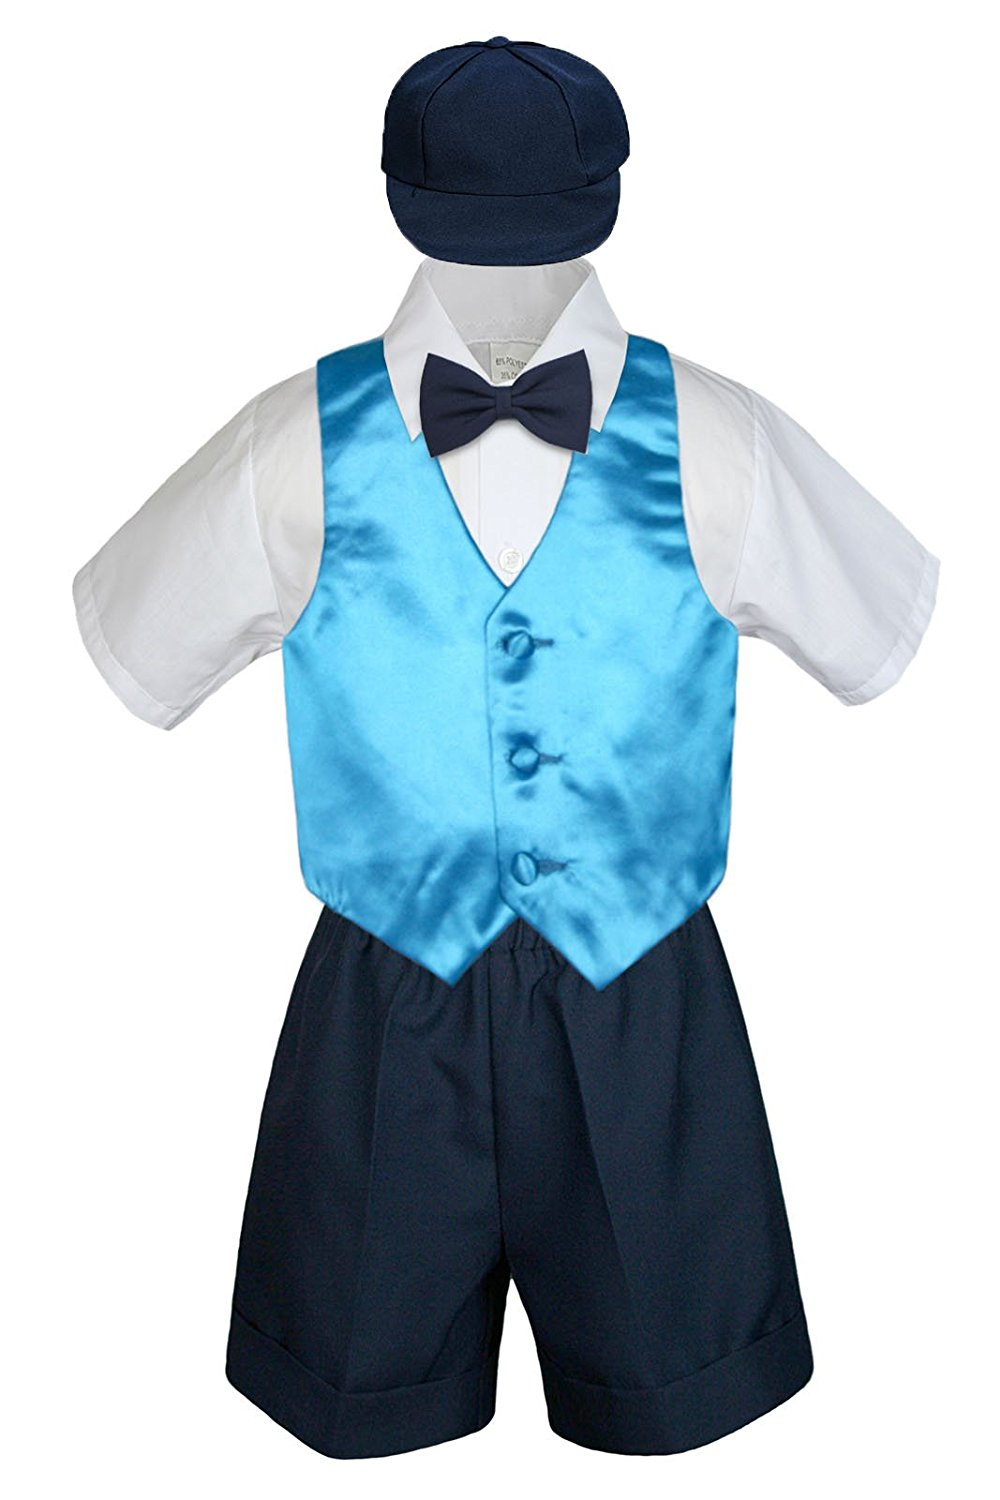 d688eee1e227 Get Quotations · Leadertux 5pc Formal Baby Toddler Boys Turquoise Vest Navy  Shorts Suits Hat S-4T (